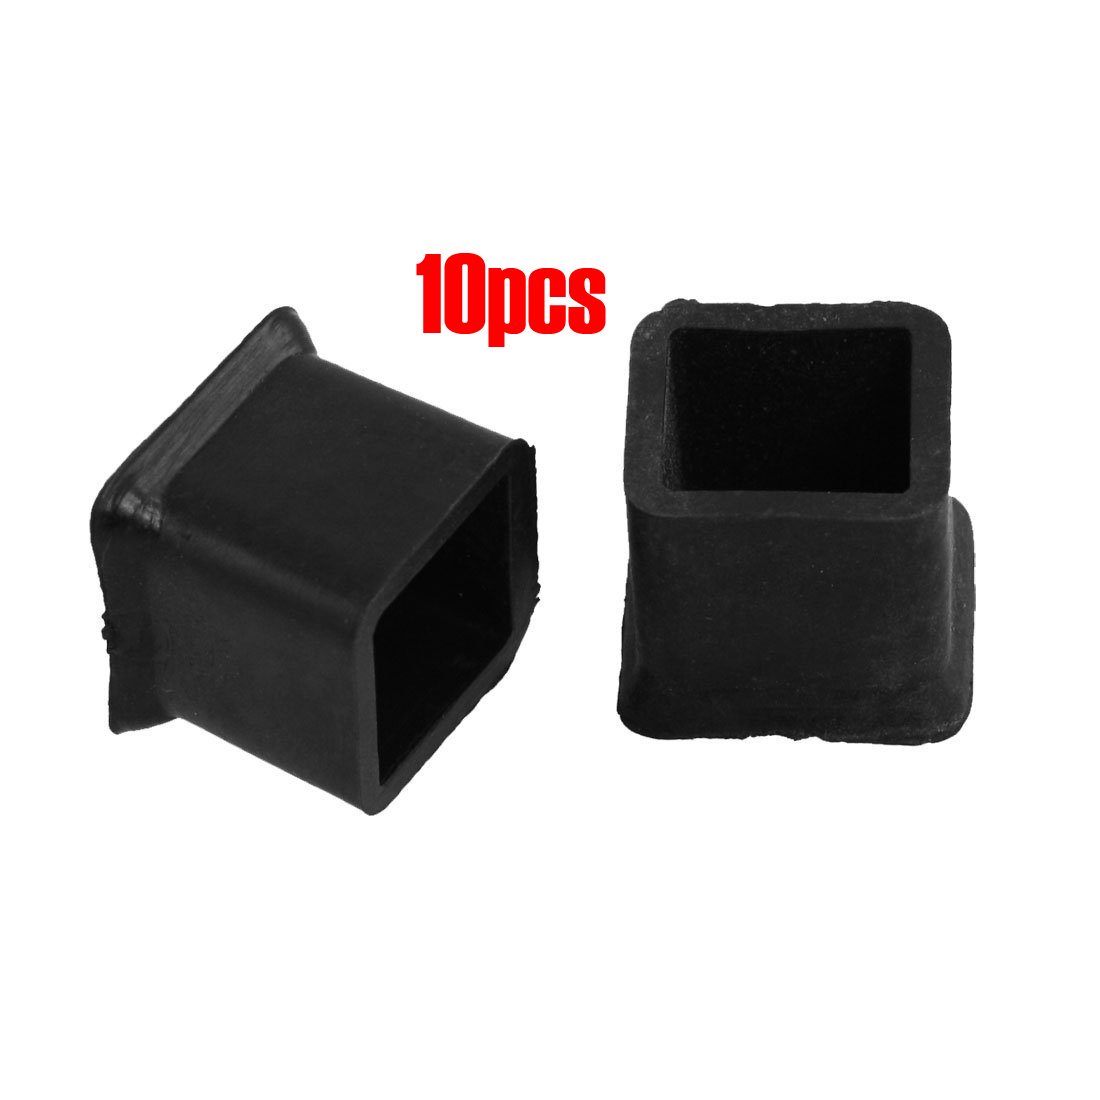 NOCM New 10Pcs Furniture Chair Table Leg Rubber Foot Covers Protectors 20mm x 20mm Free Shipping free shipping 10pcs smd foot hcpl3101 a3101